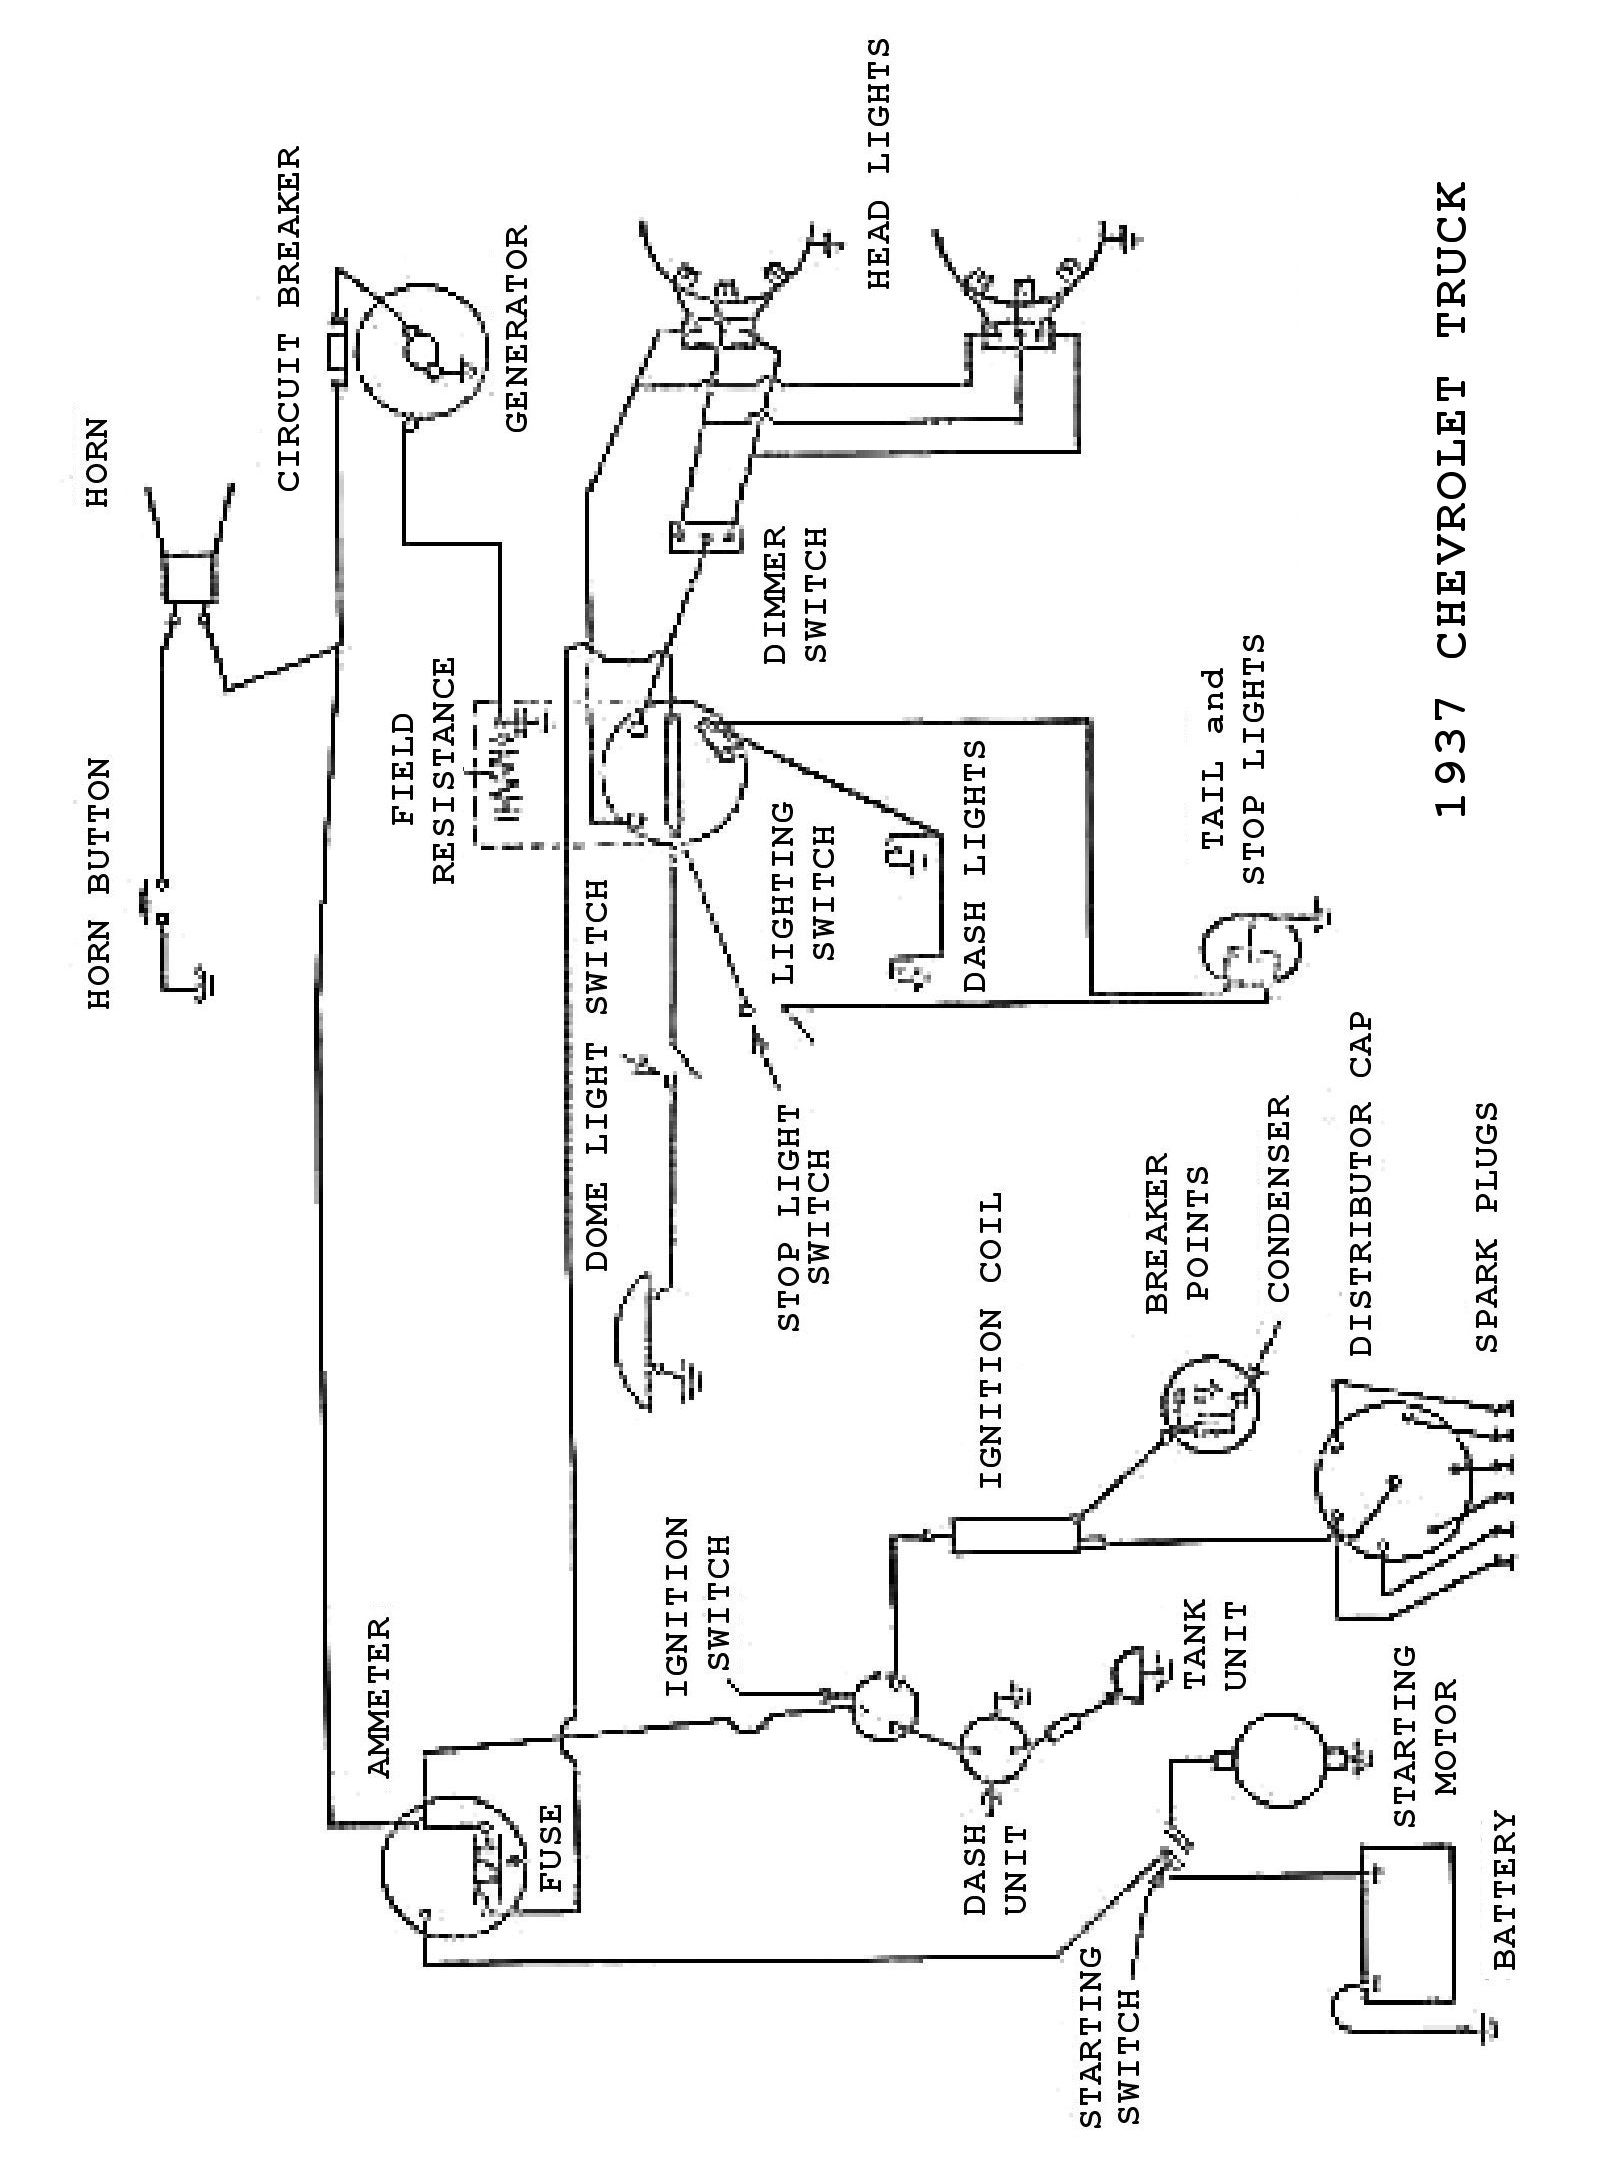 37truck chevy truck wiring diagram 87 chevy truck wiring diagram \u2022 wiring 1965 chevy truck turn signal wiring diagram at reclaimingppi.co